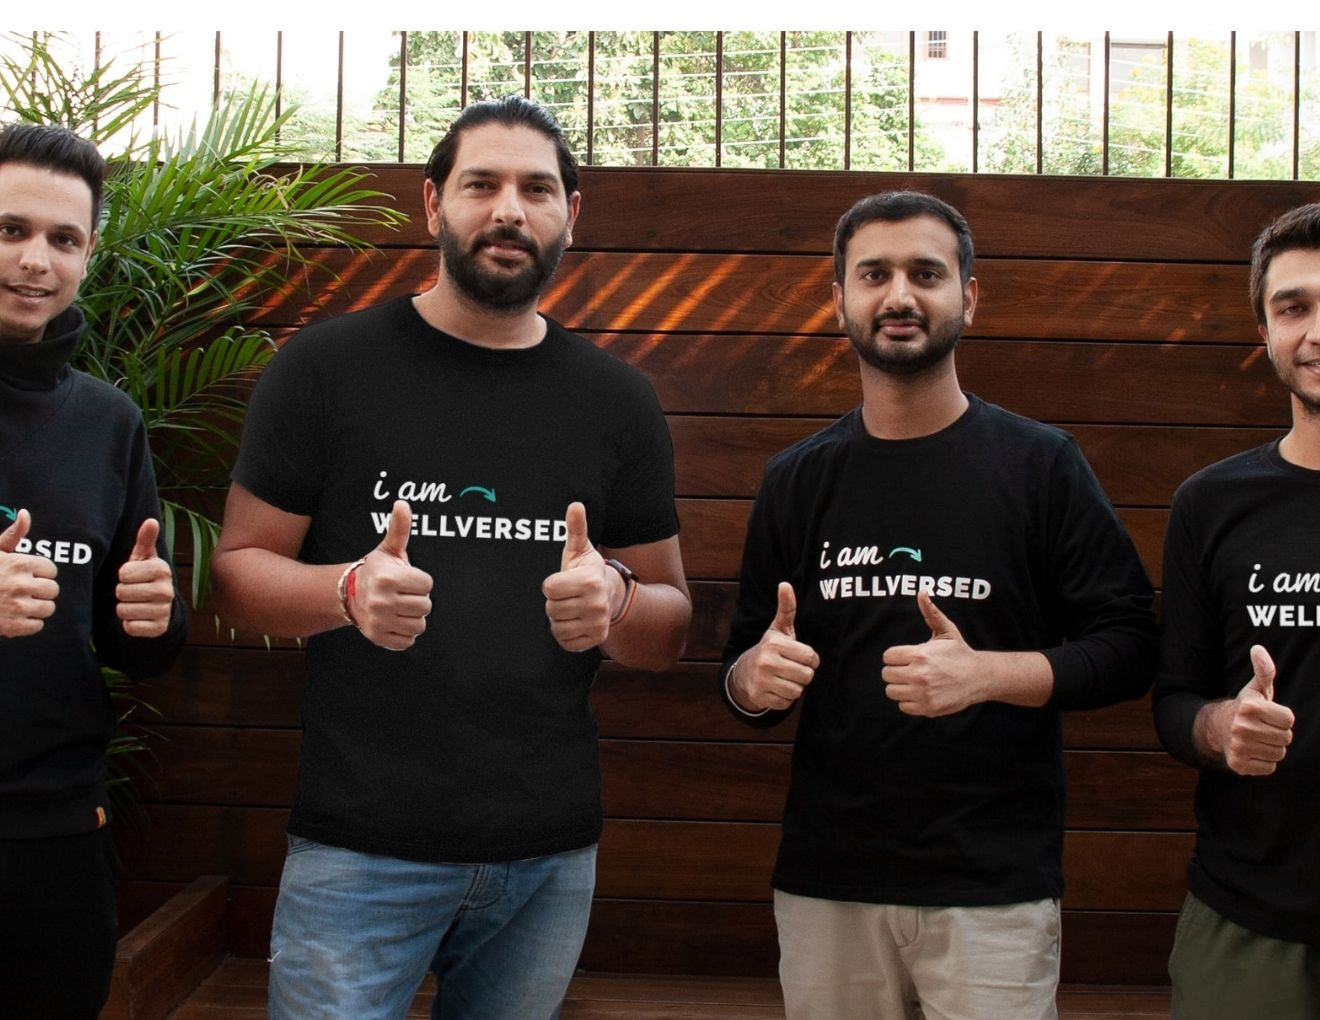 Cricketer Yuvraj Singh Invests In Another Healthcare Startup Wellversed After Healthians